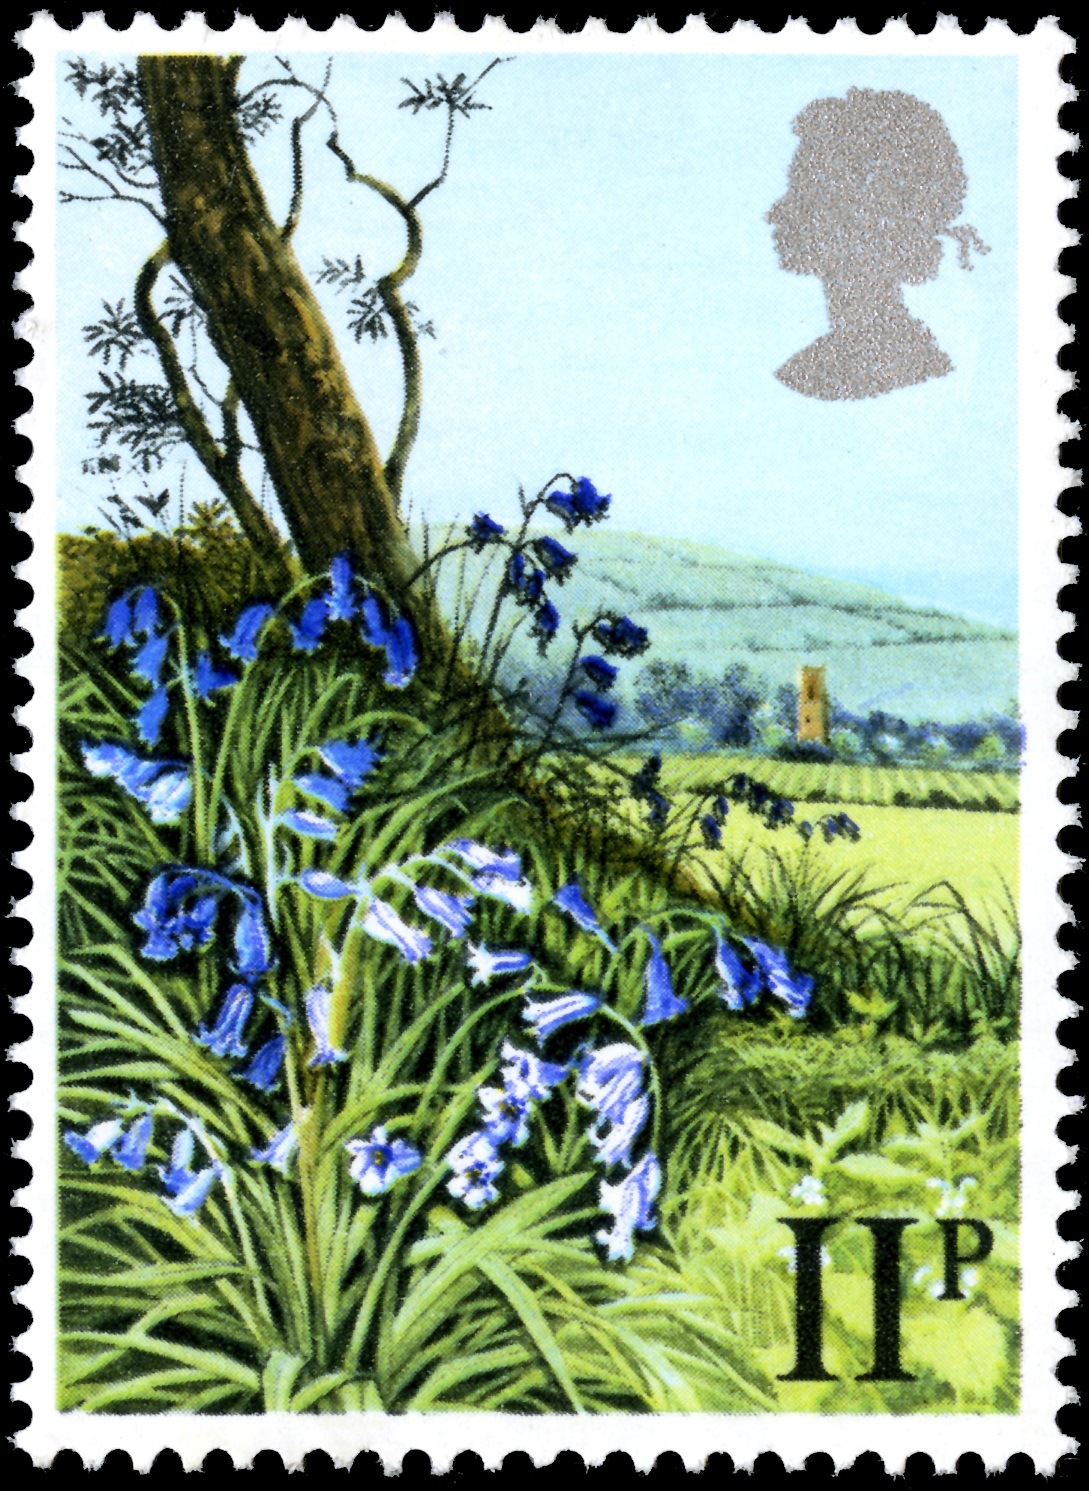 Wild Bluebells in the countryside on a 11 pence stamp.